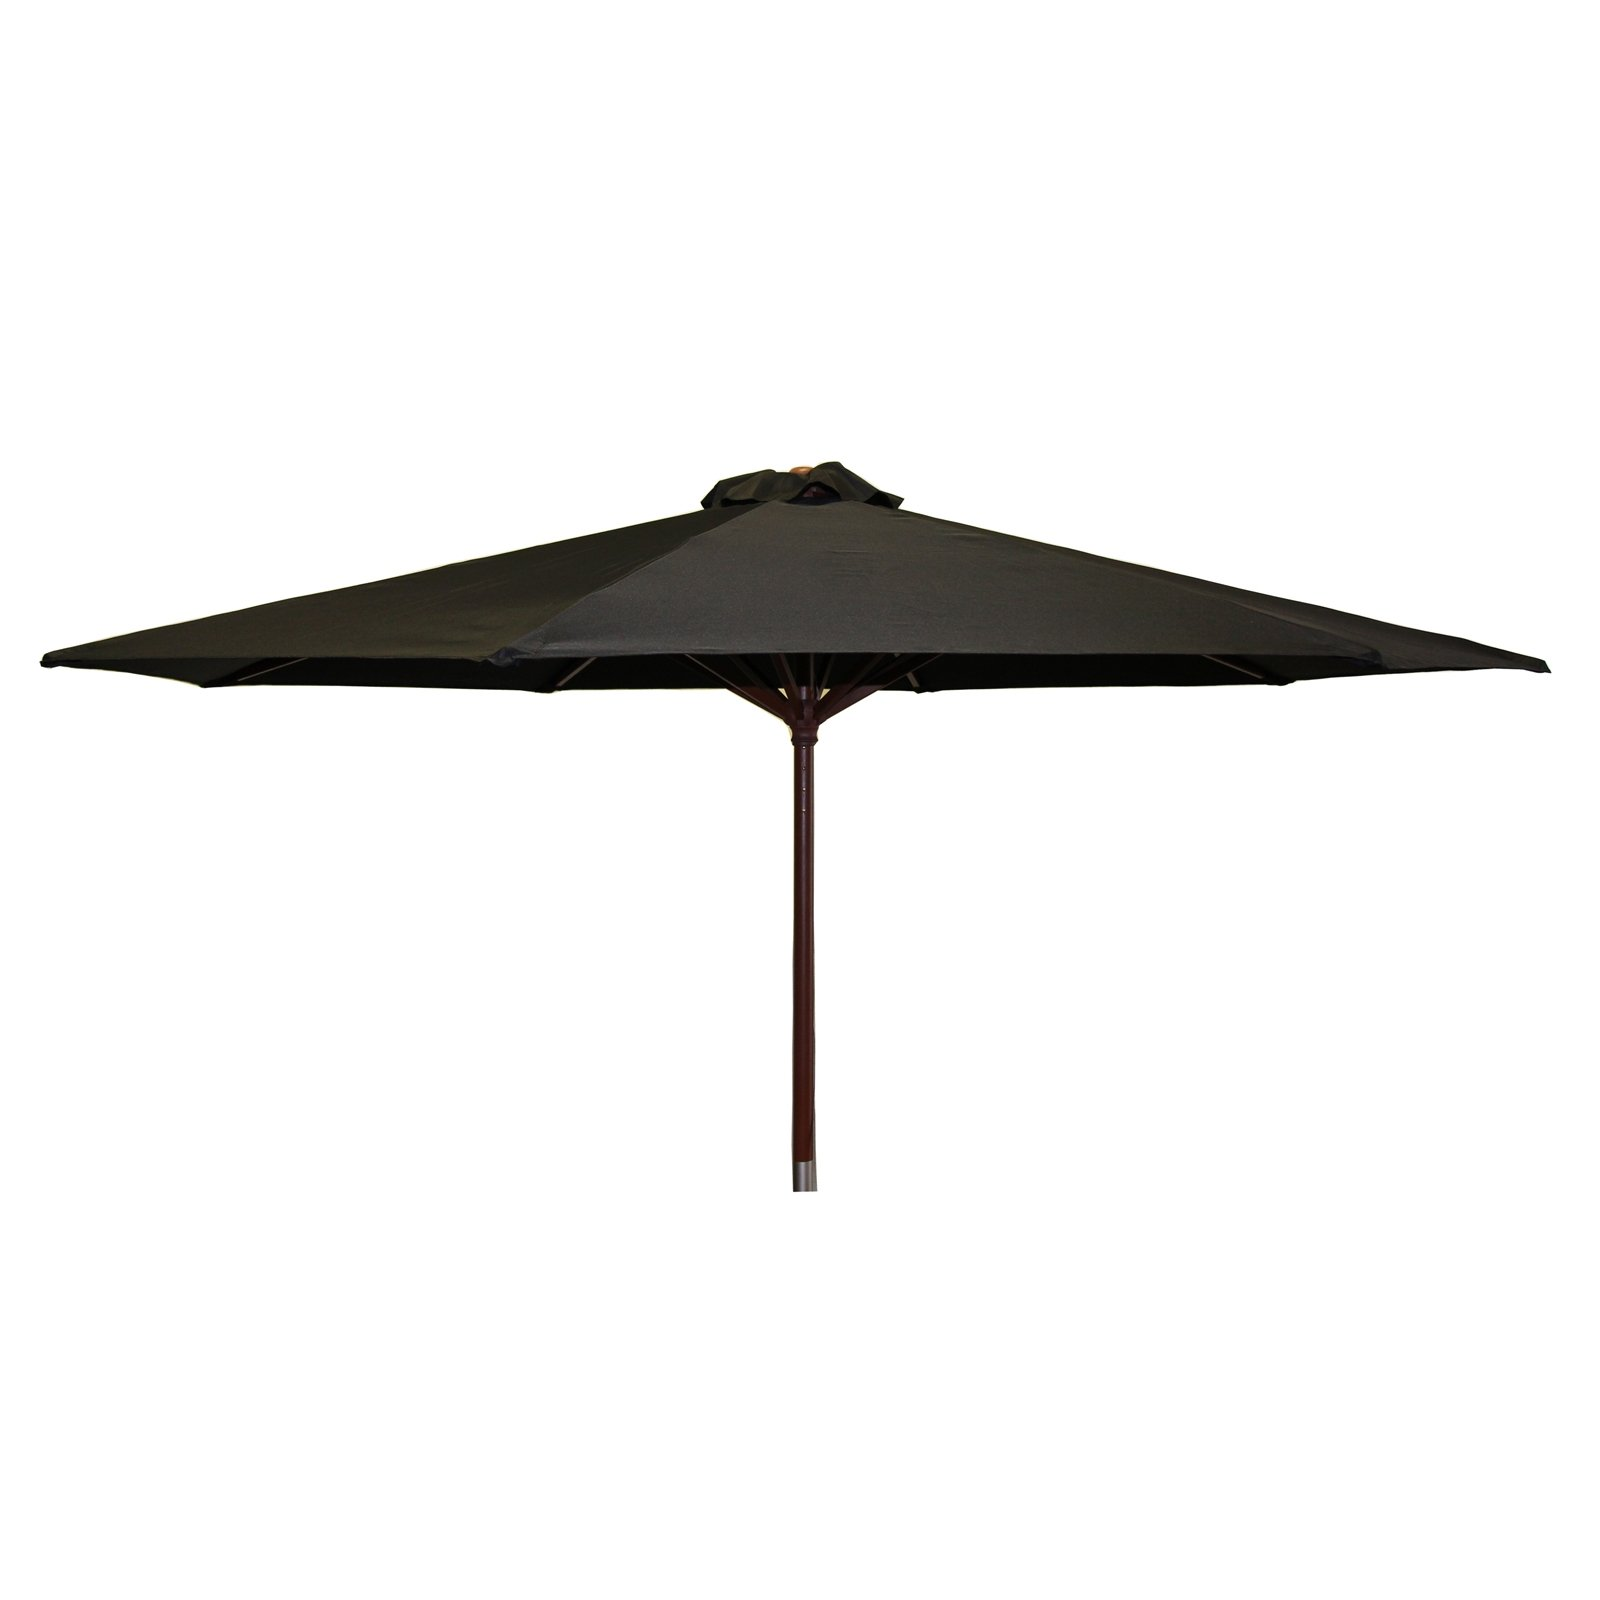 Classic Wood 9 foot Market Patio Umbrella - Black